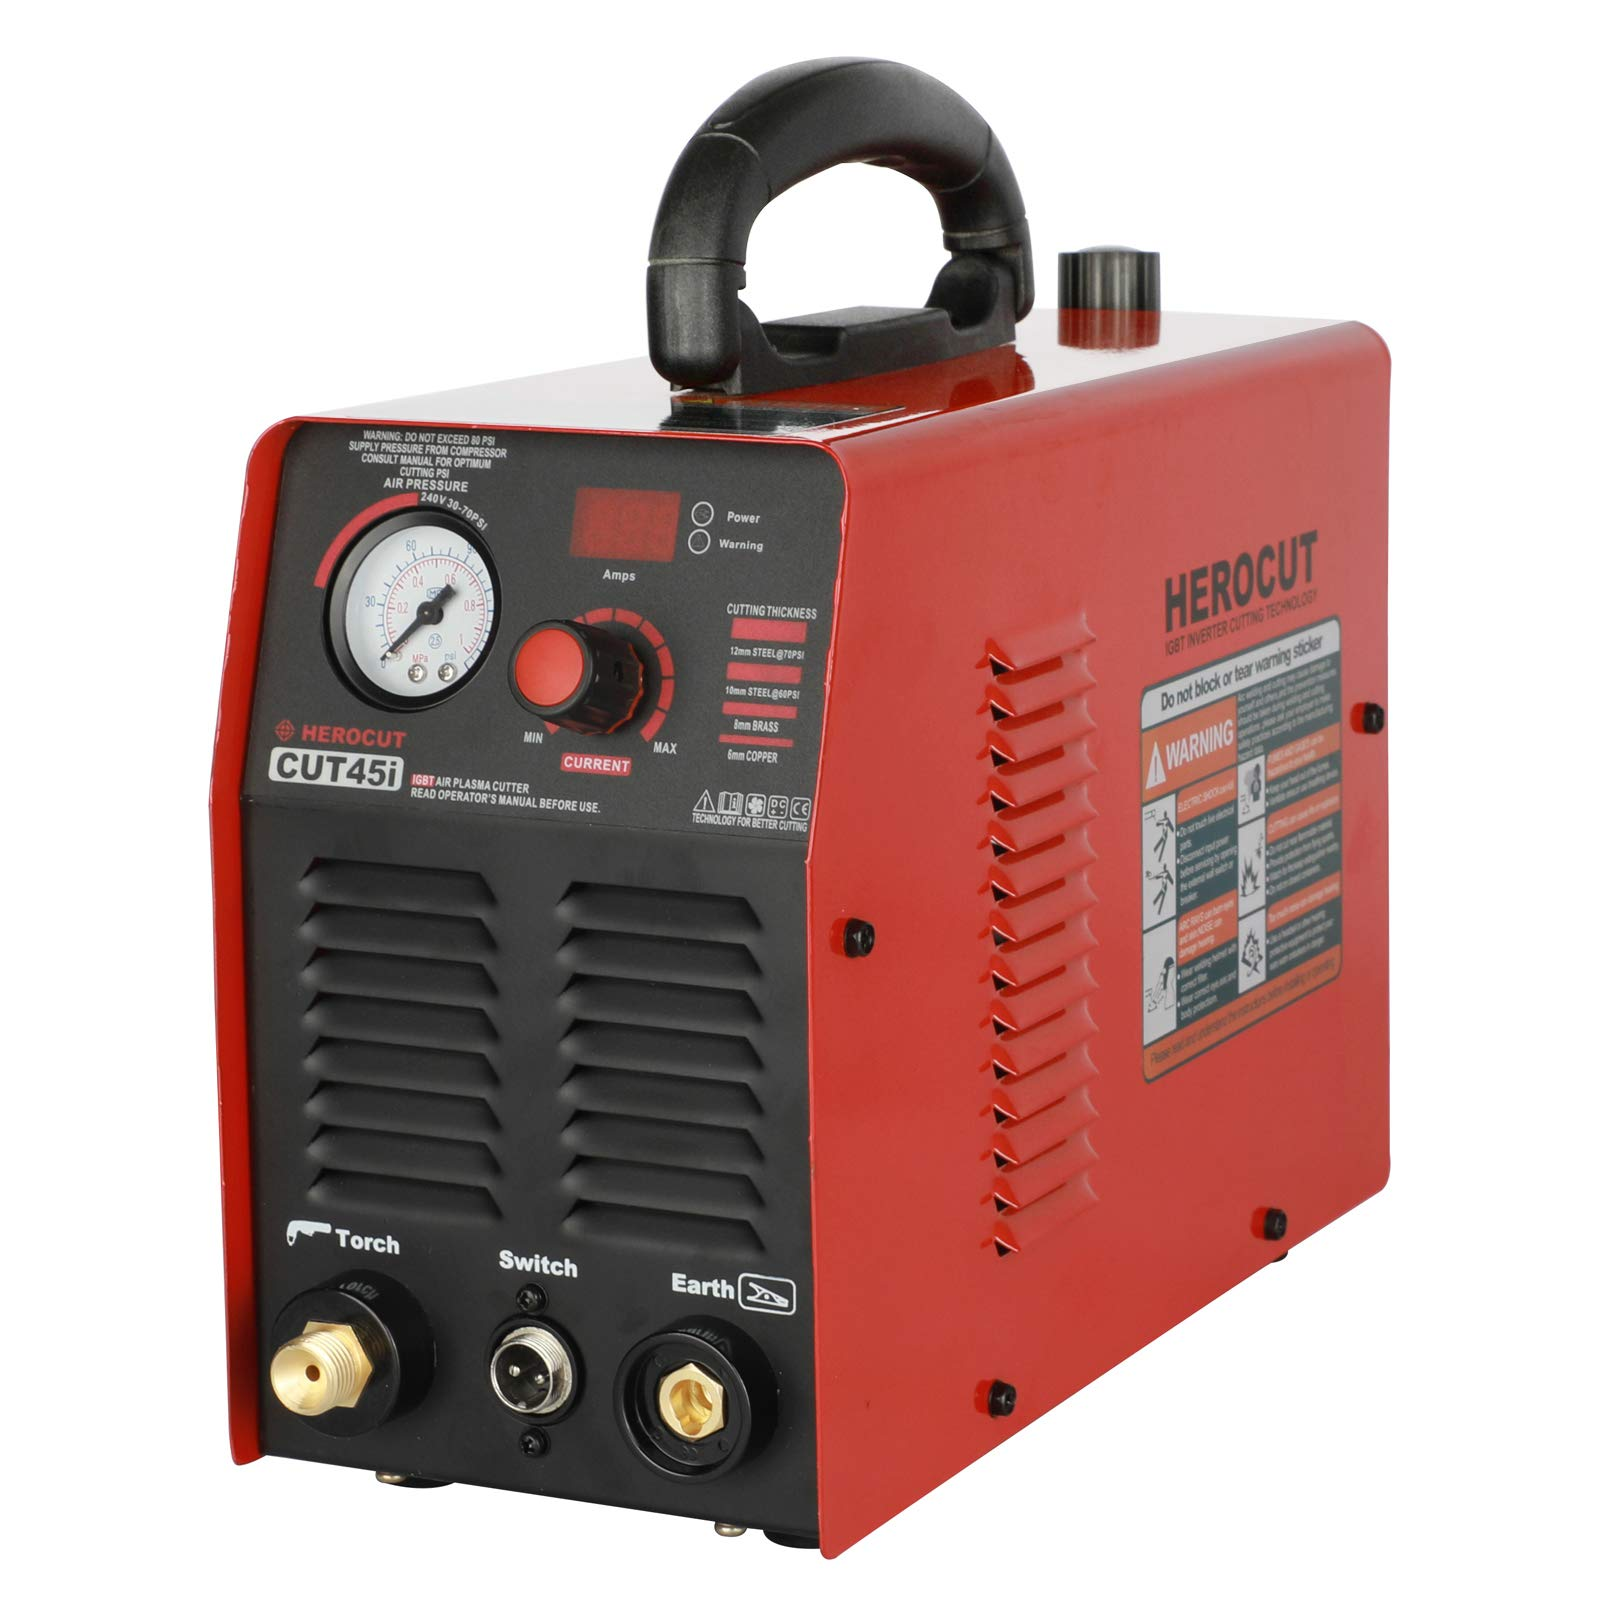 Plasma 110 Voltage CUT45i Inverter Air Plasma Cutter IGBT 10mm Clean Cut In 70psi 14mm Servance Cut (CUT45i 110v) by HEROCUT